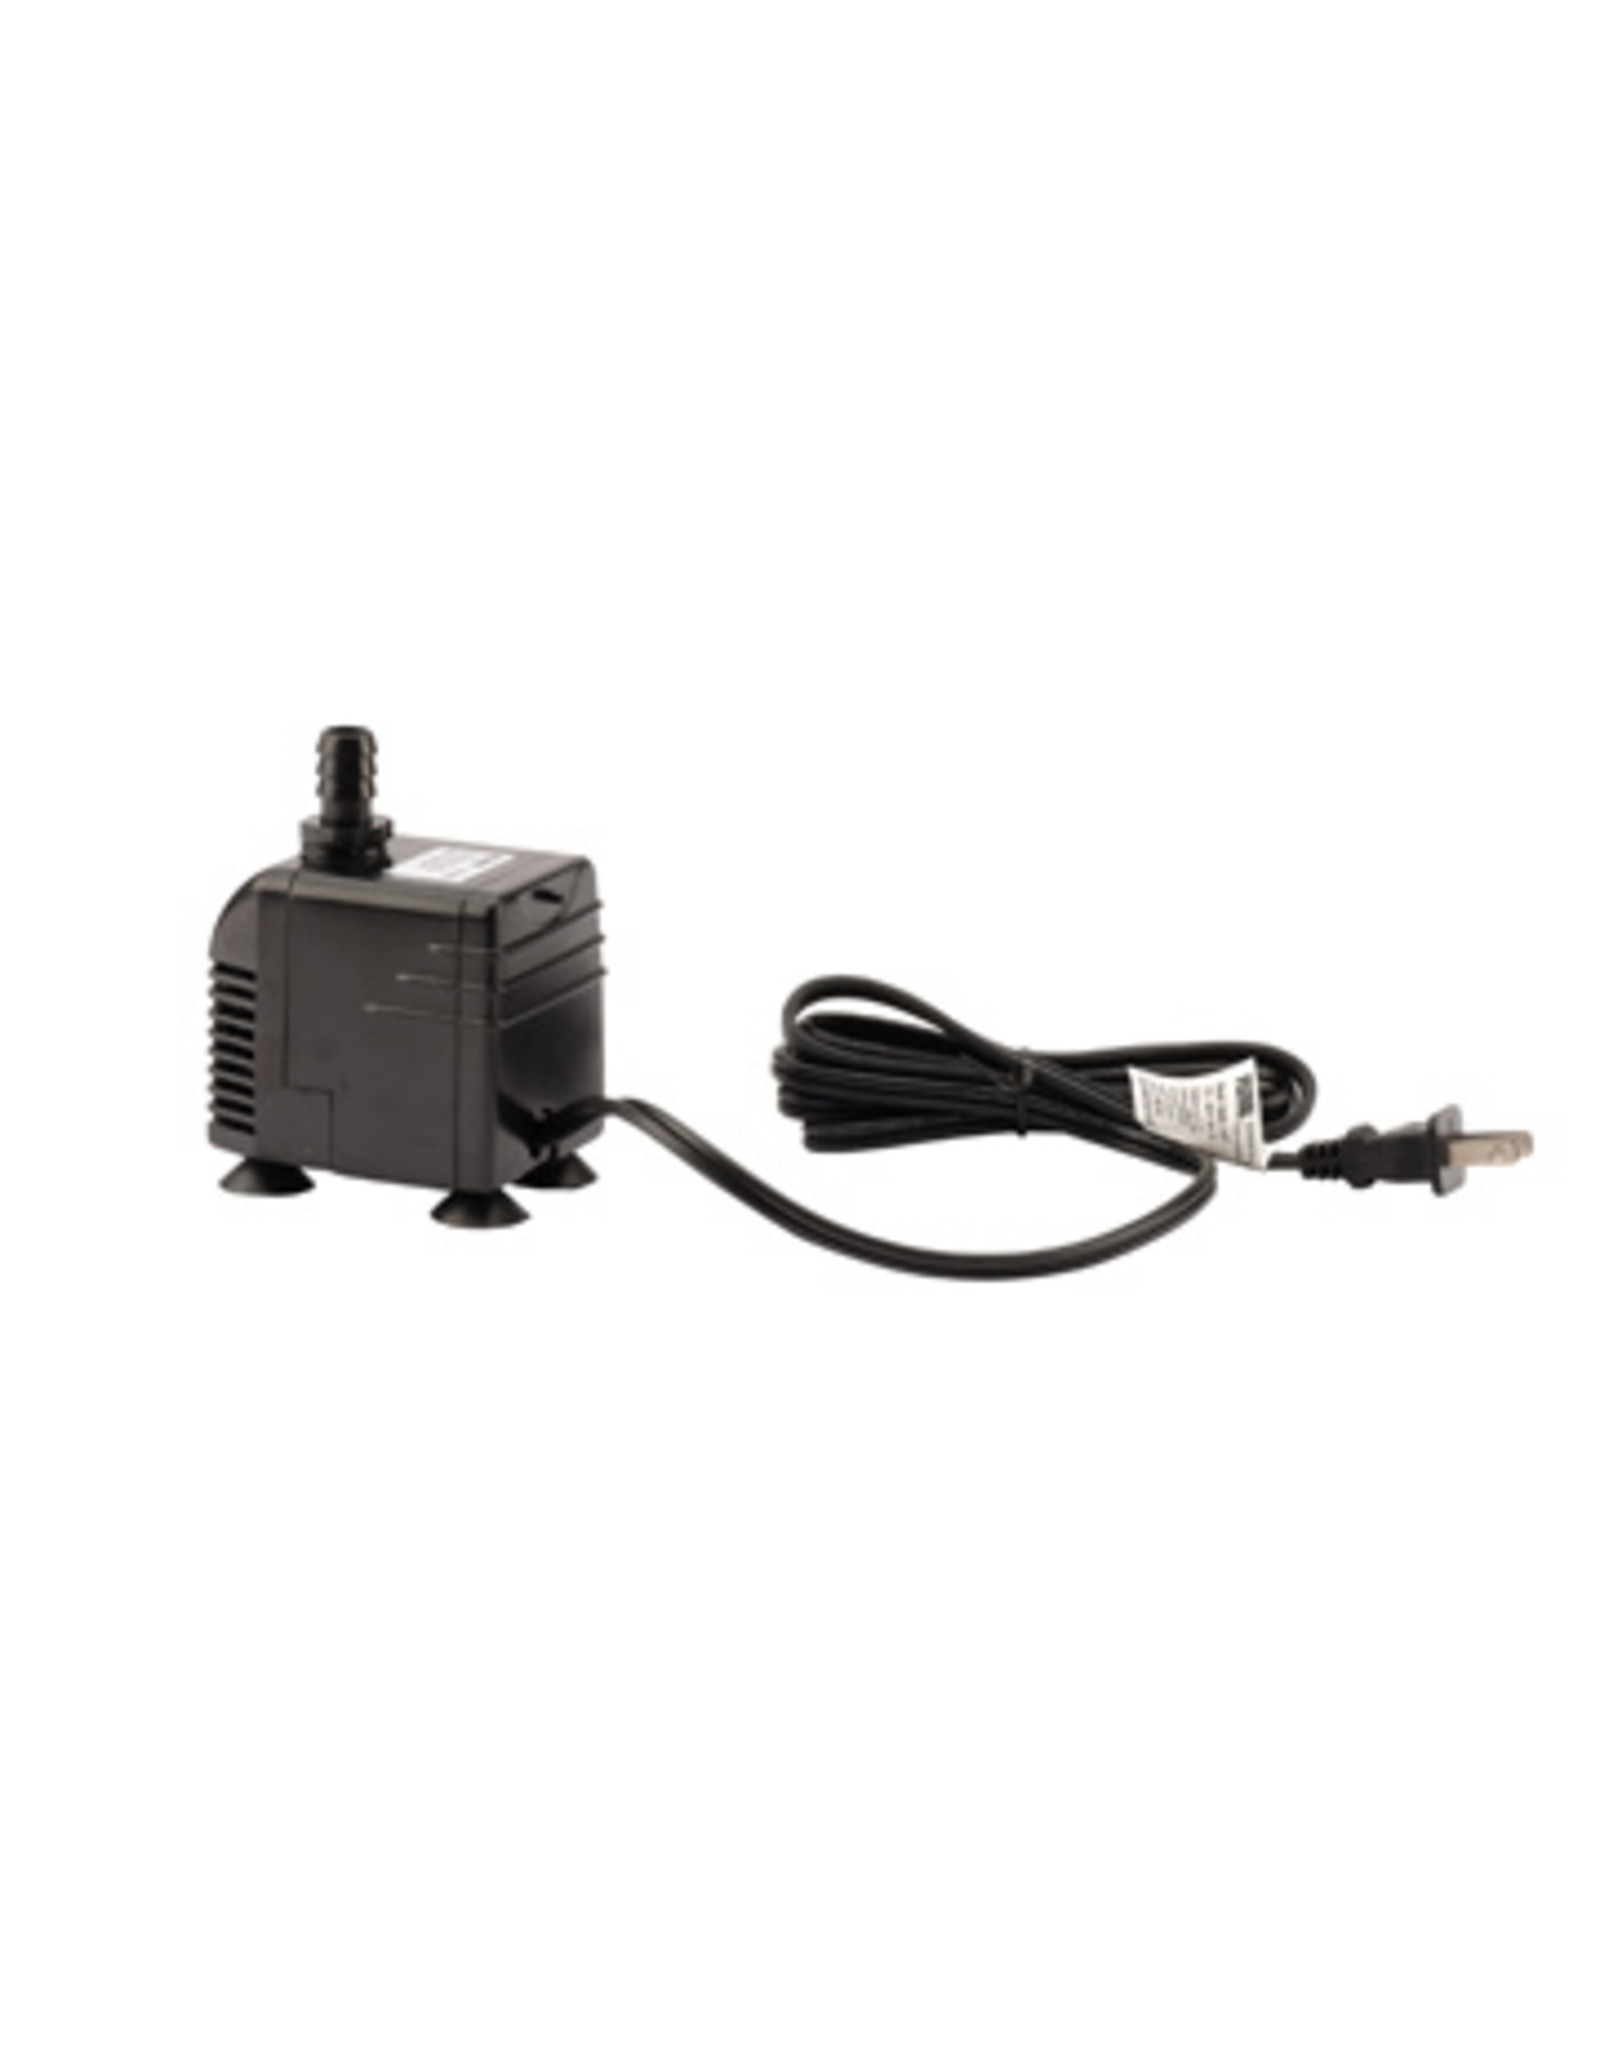 Fluval FLUVAL Replacement Circulation Pump WP1500